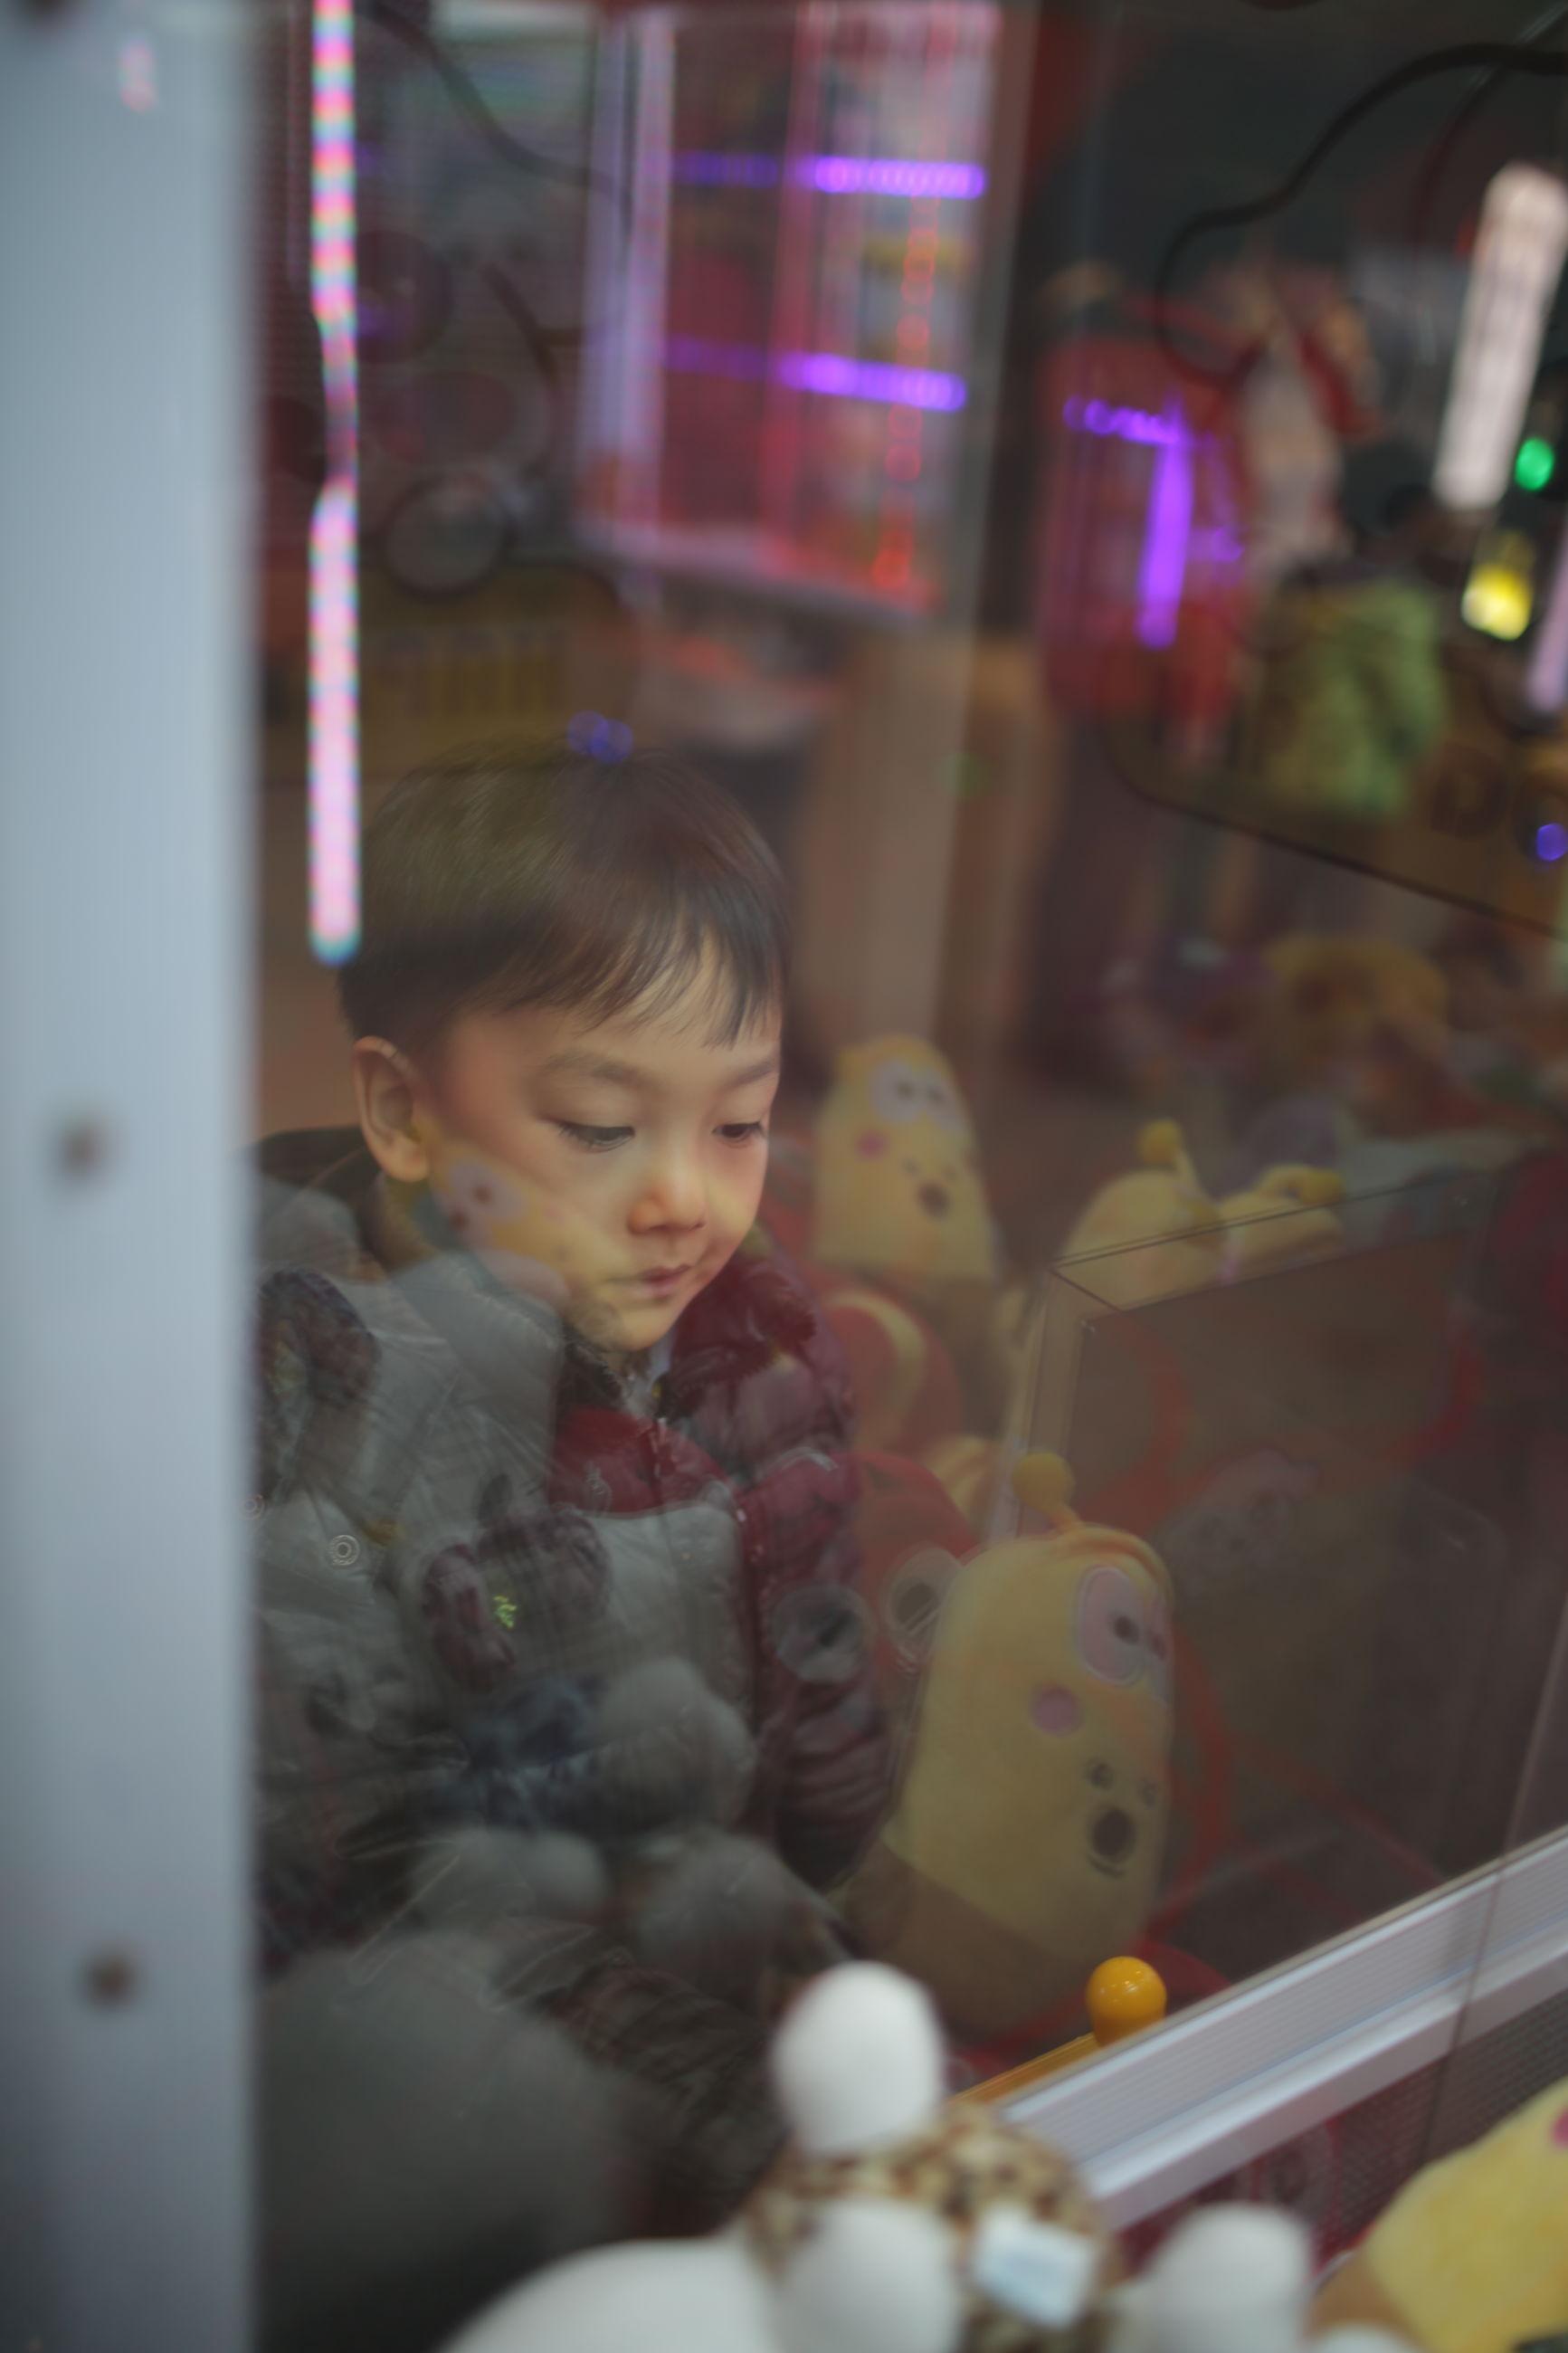 indoors, childhood, lifestyles, leisure activity, toy, person, selective focus, sitting, looking at camera, portrait, elementary age, cute, home interior, front view, focus on foreground, fun, reflection, playing